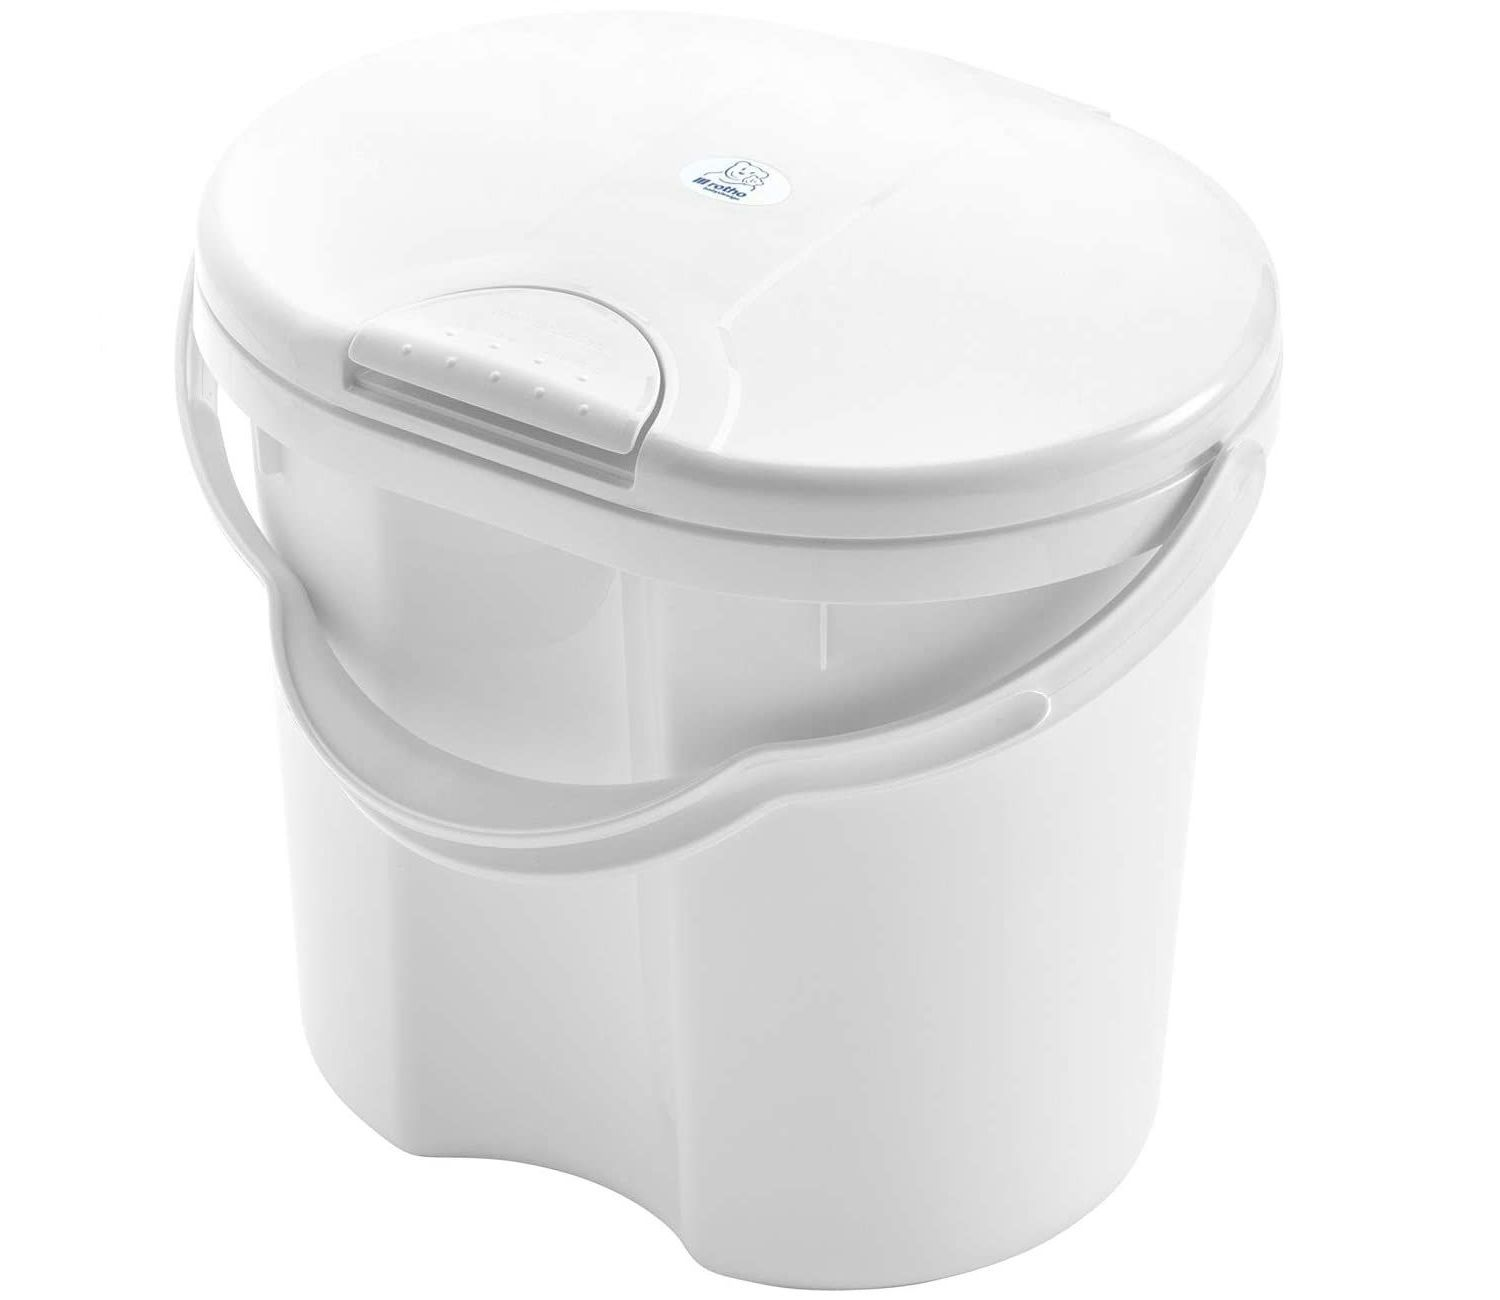 Rotho Babydesign TOP Nappy Bucket With Lid 11 Ltr Capacity - Choose your Colour - White